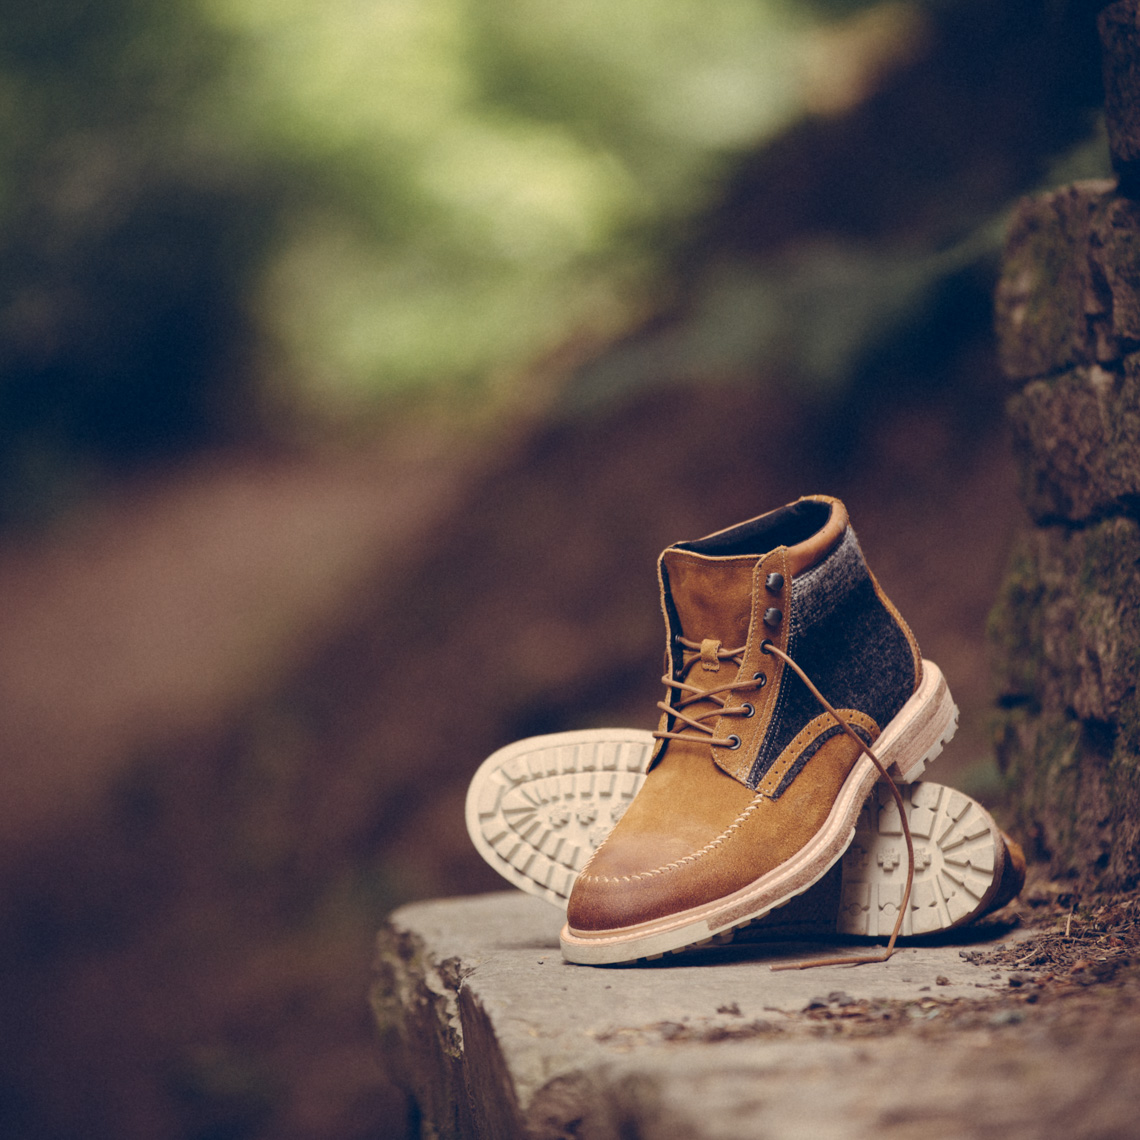 46024_274137_Woolrich_Footwear_Creative_Test_7937-3_full